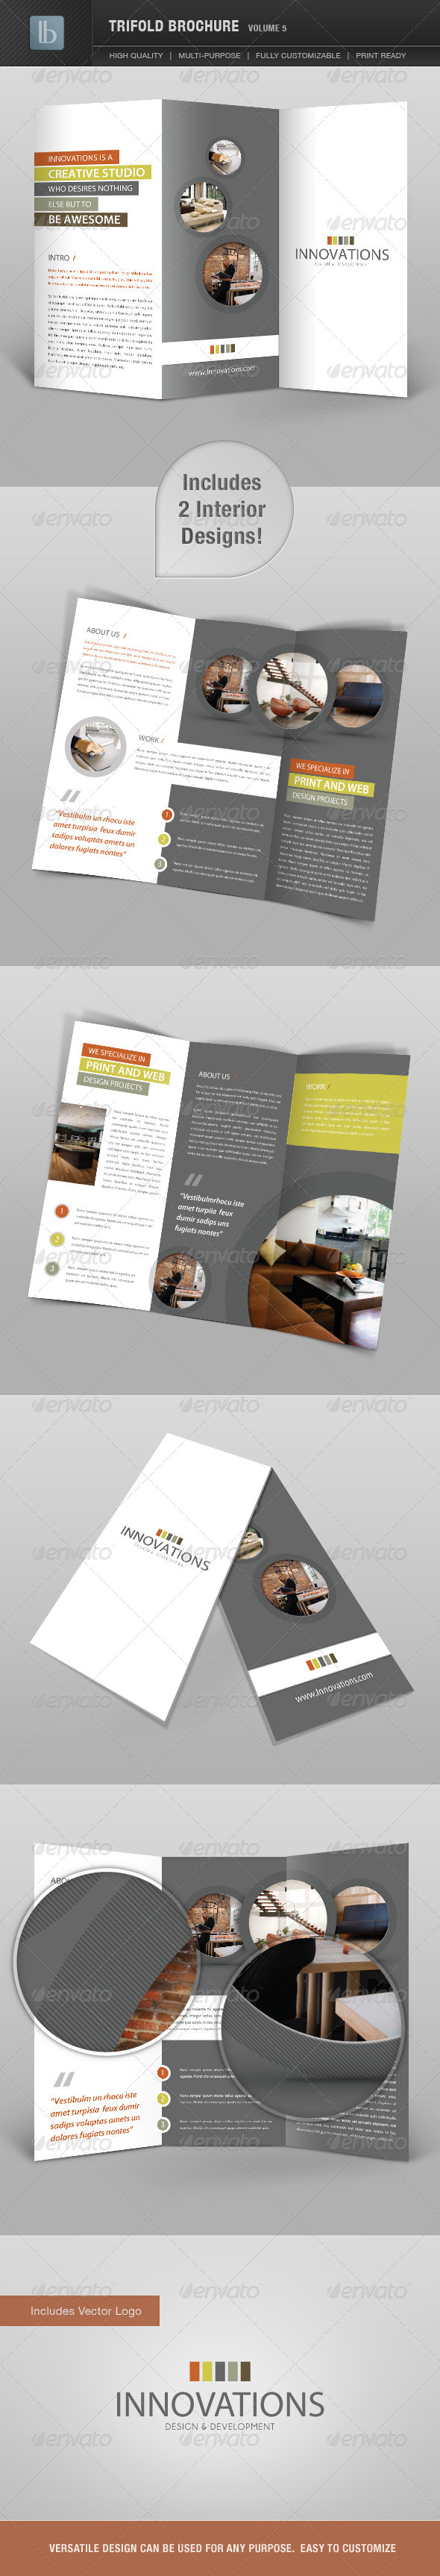 Trifold Brochure | Volume 5 - Brochures Print Templates